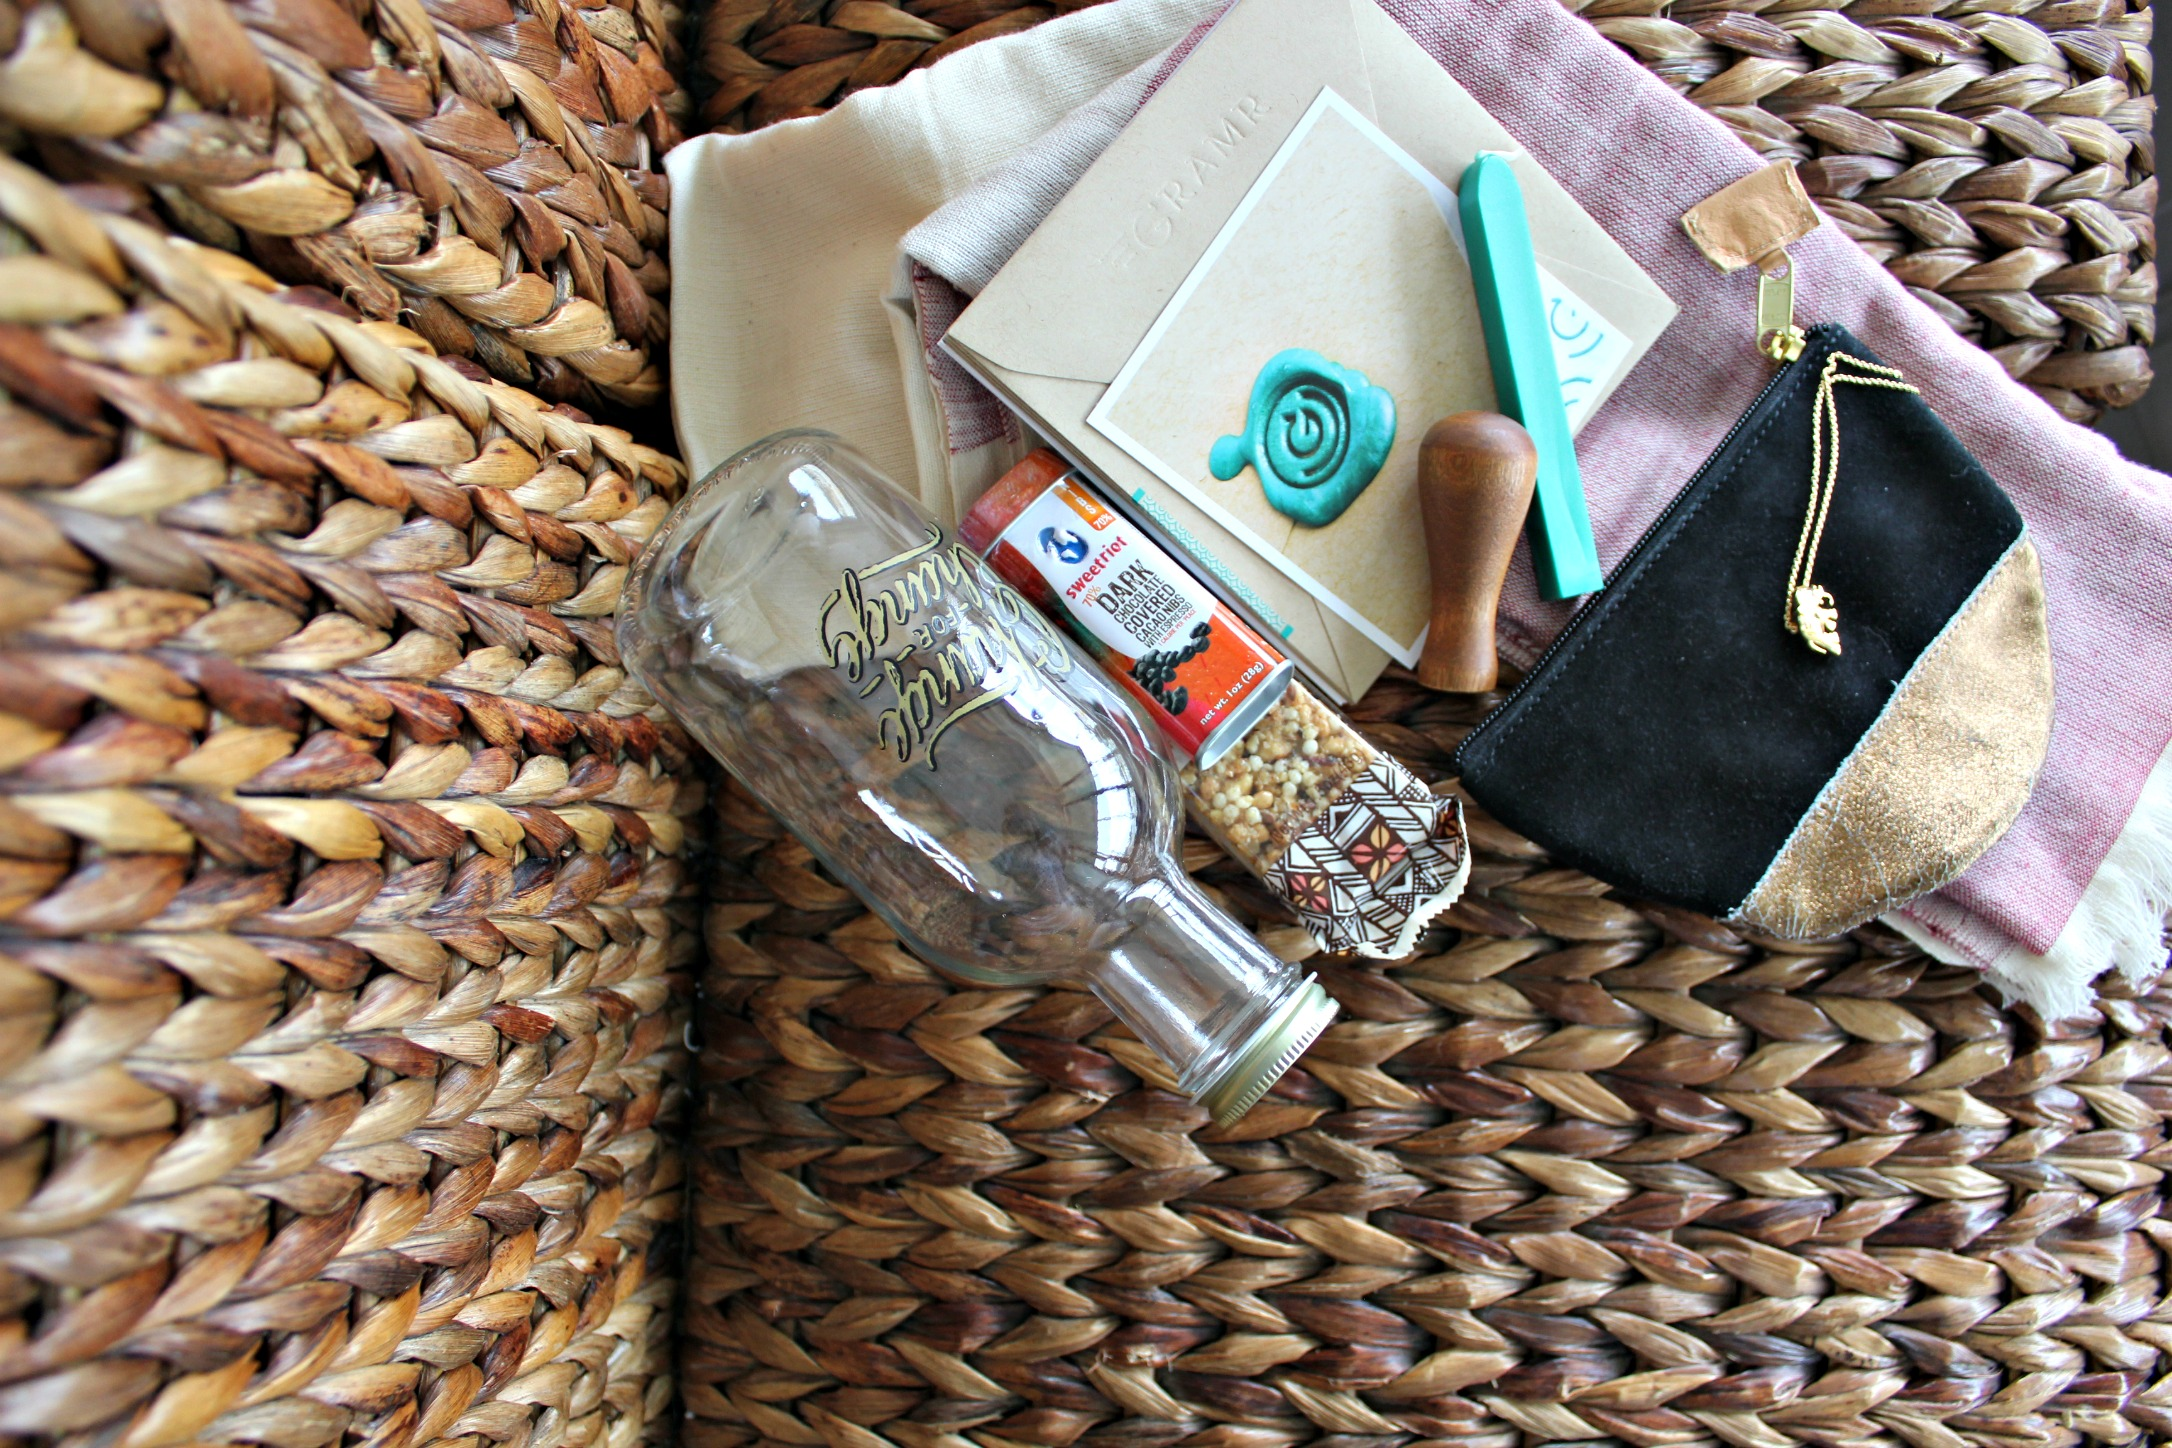 12 No-Fail Tips For Putting Together Amazing Gift Baskets (+150 Basket Theme Ideas) SheJustGlows.com